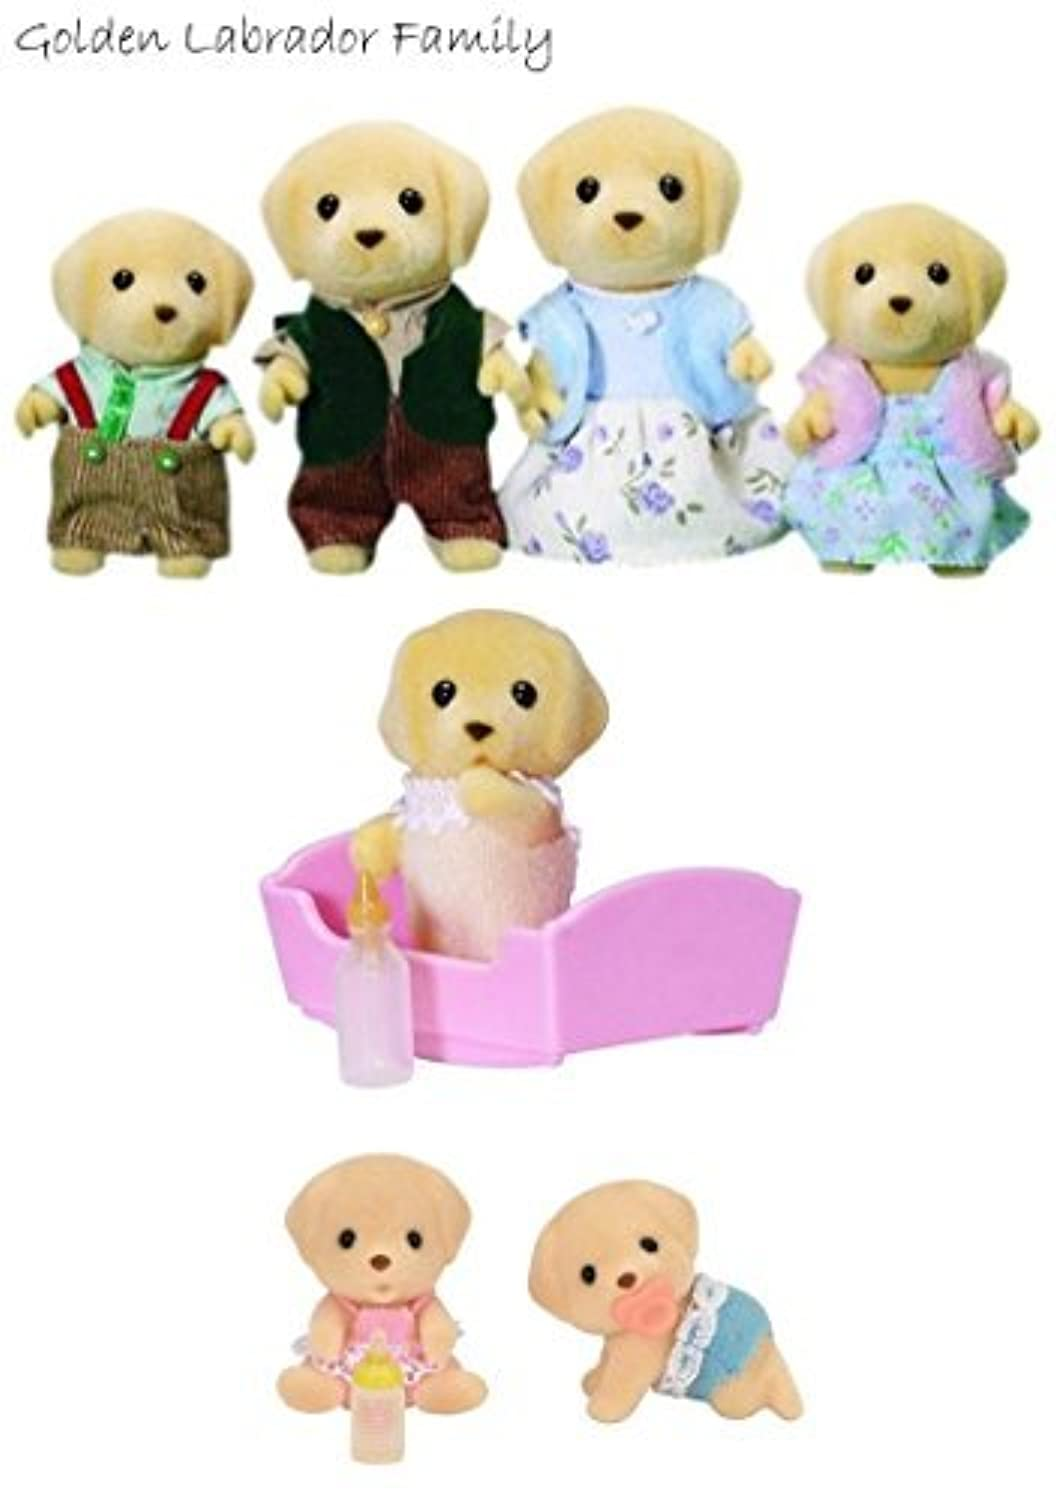 Sylvanian Families Golden Labrador Family Set, Twins Set and Baby - Value Pack [並行輸入品]